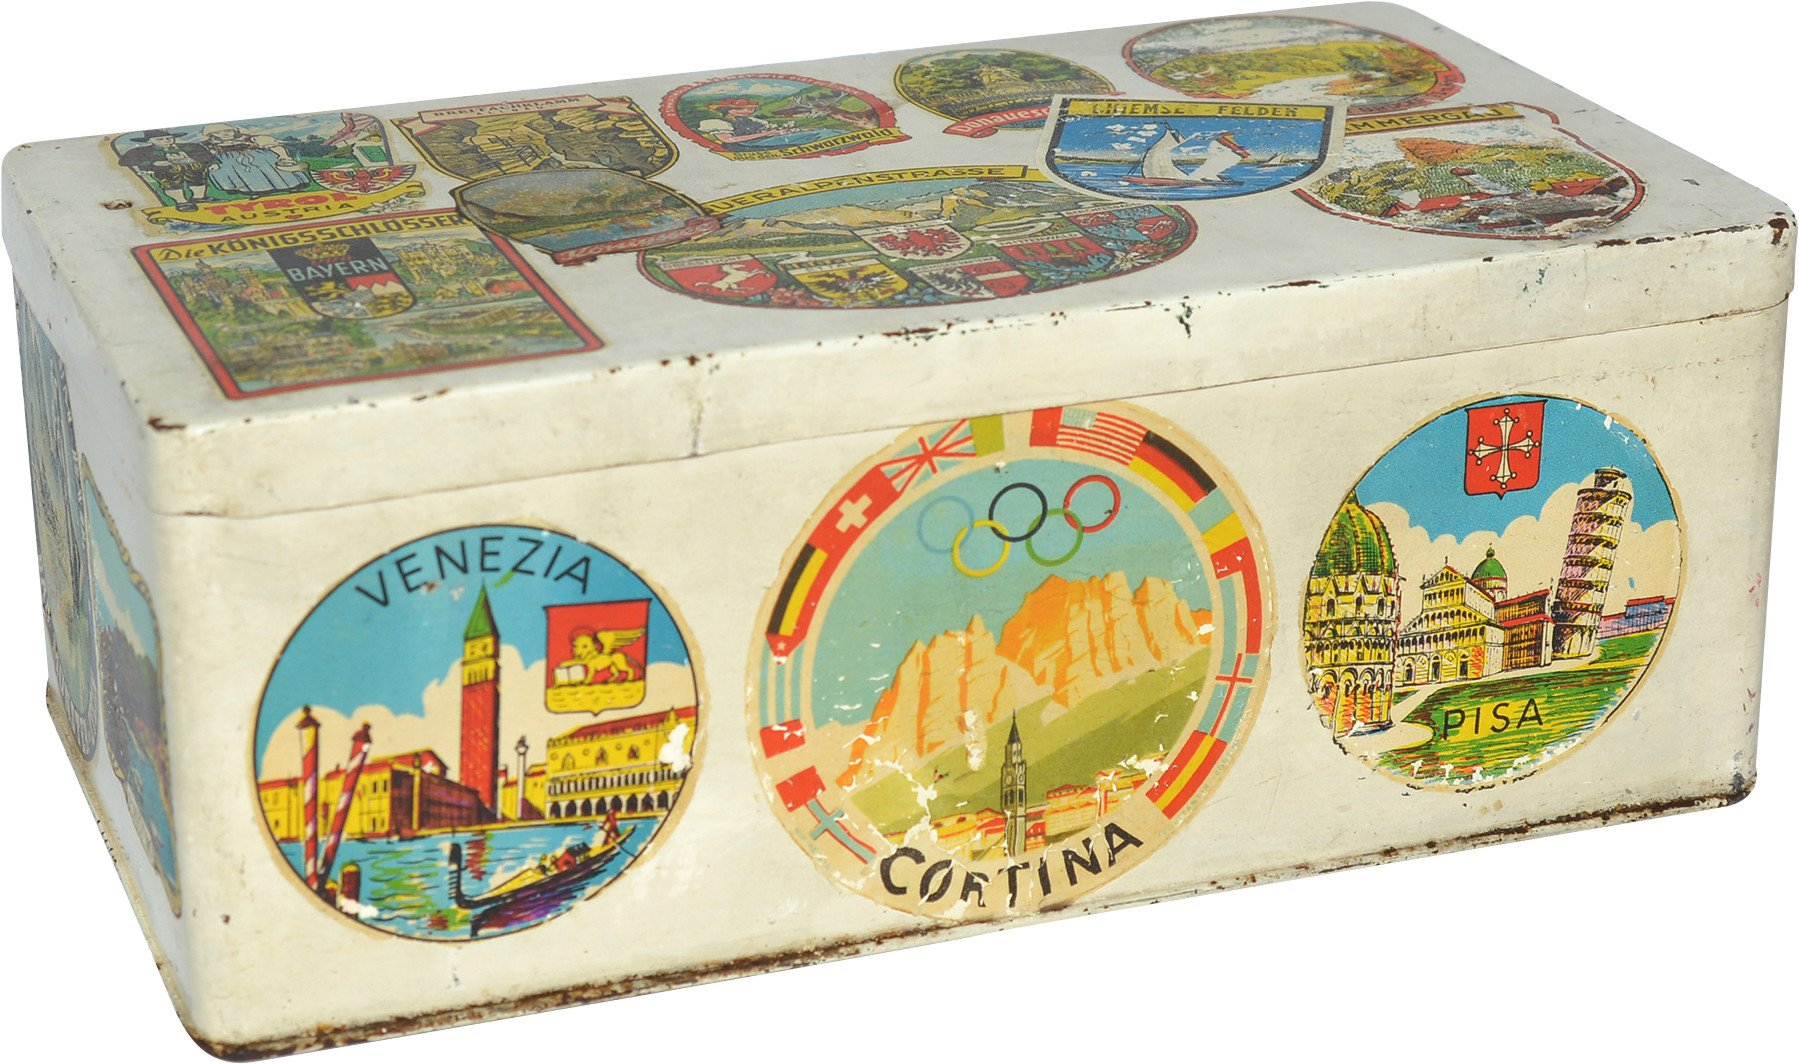 Container, Germany, 1960s